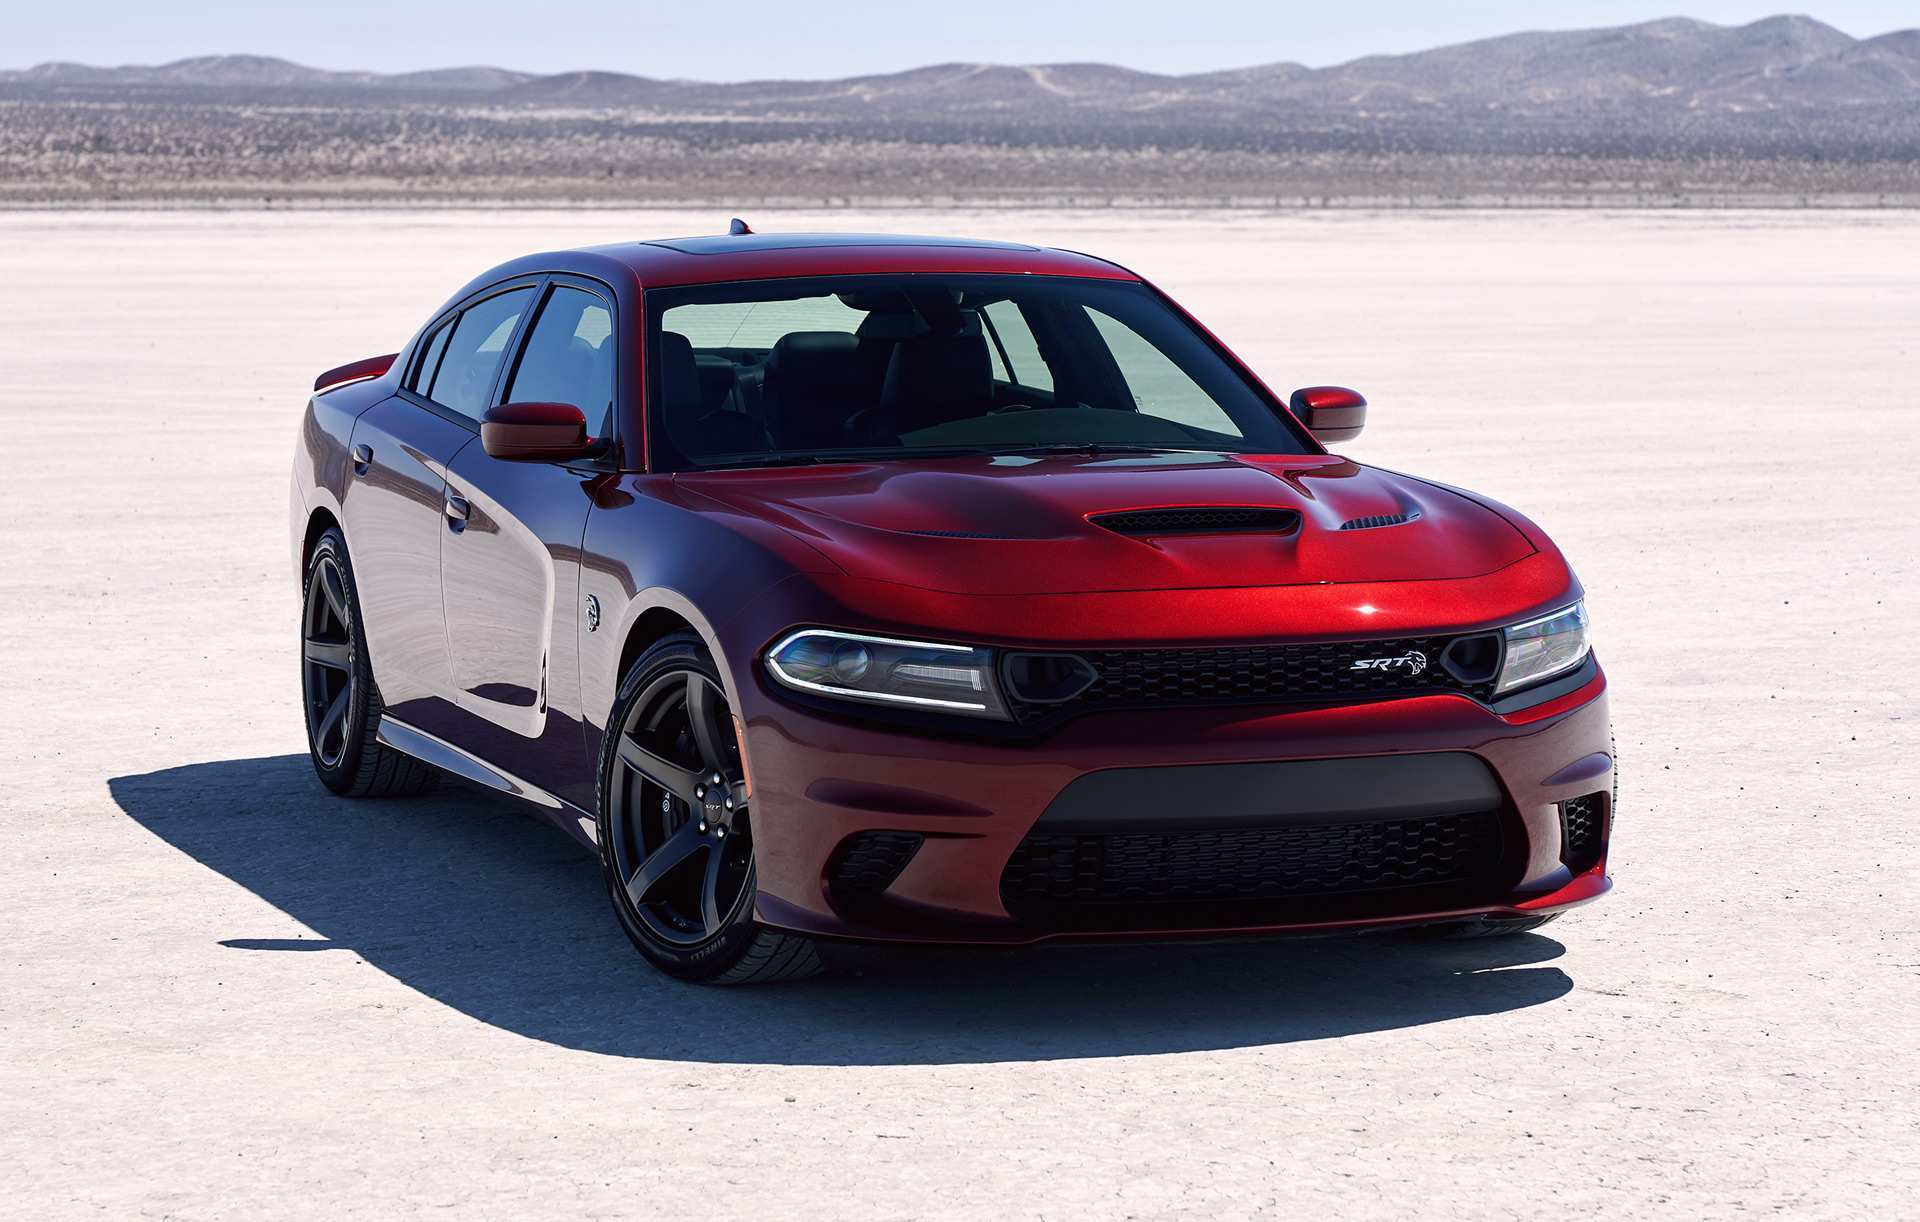 33 Best 2019 Dodge Charger SRT8 Speed Test